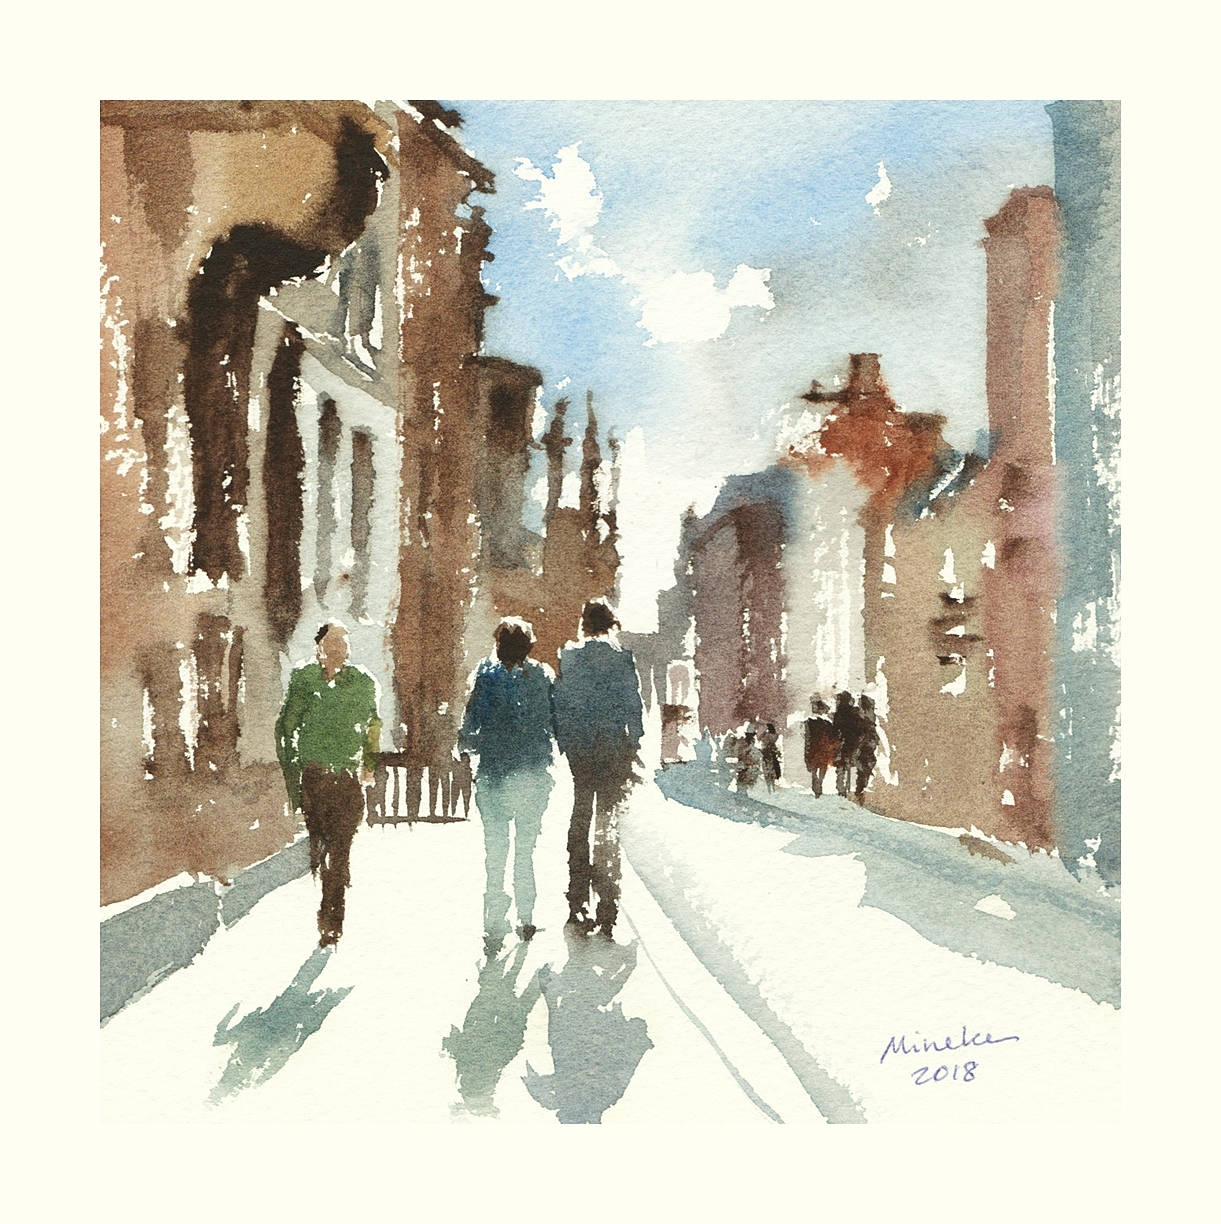 2018-130618-art-minekereinders-small-watercolor-passers-by